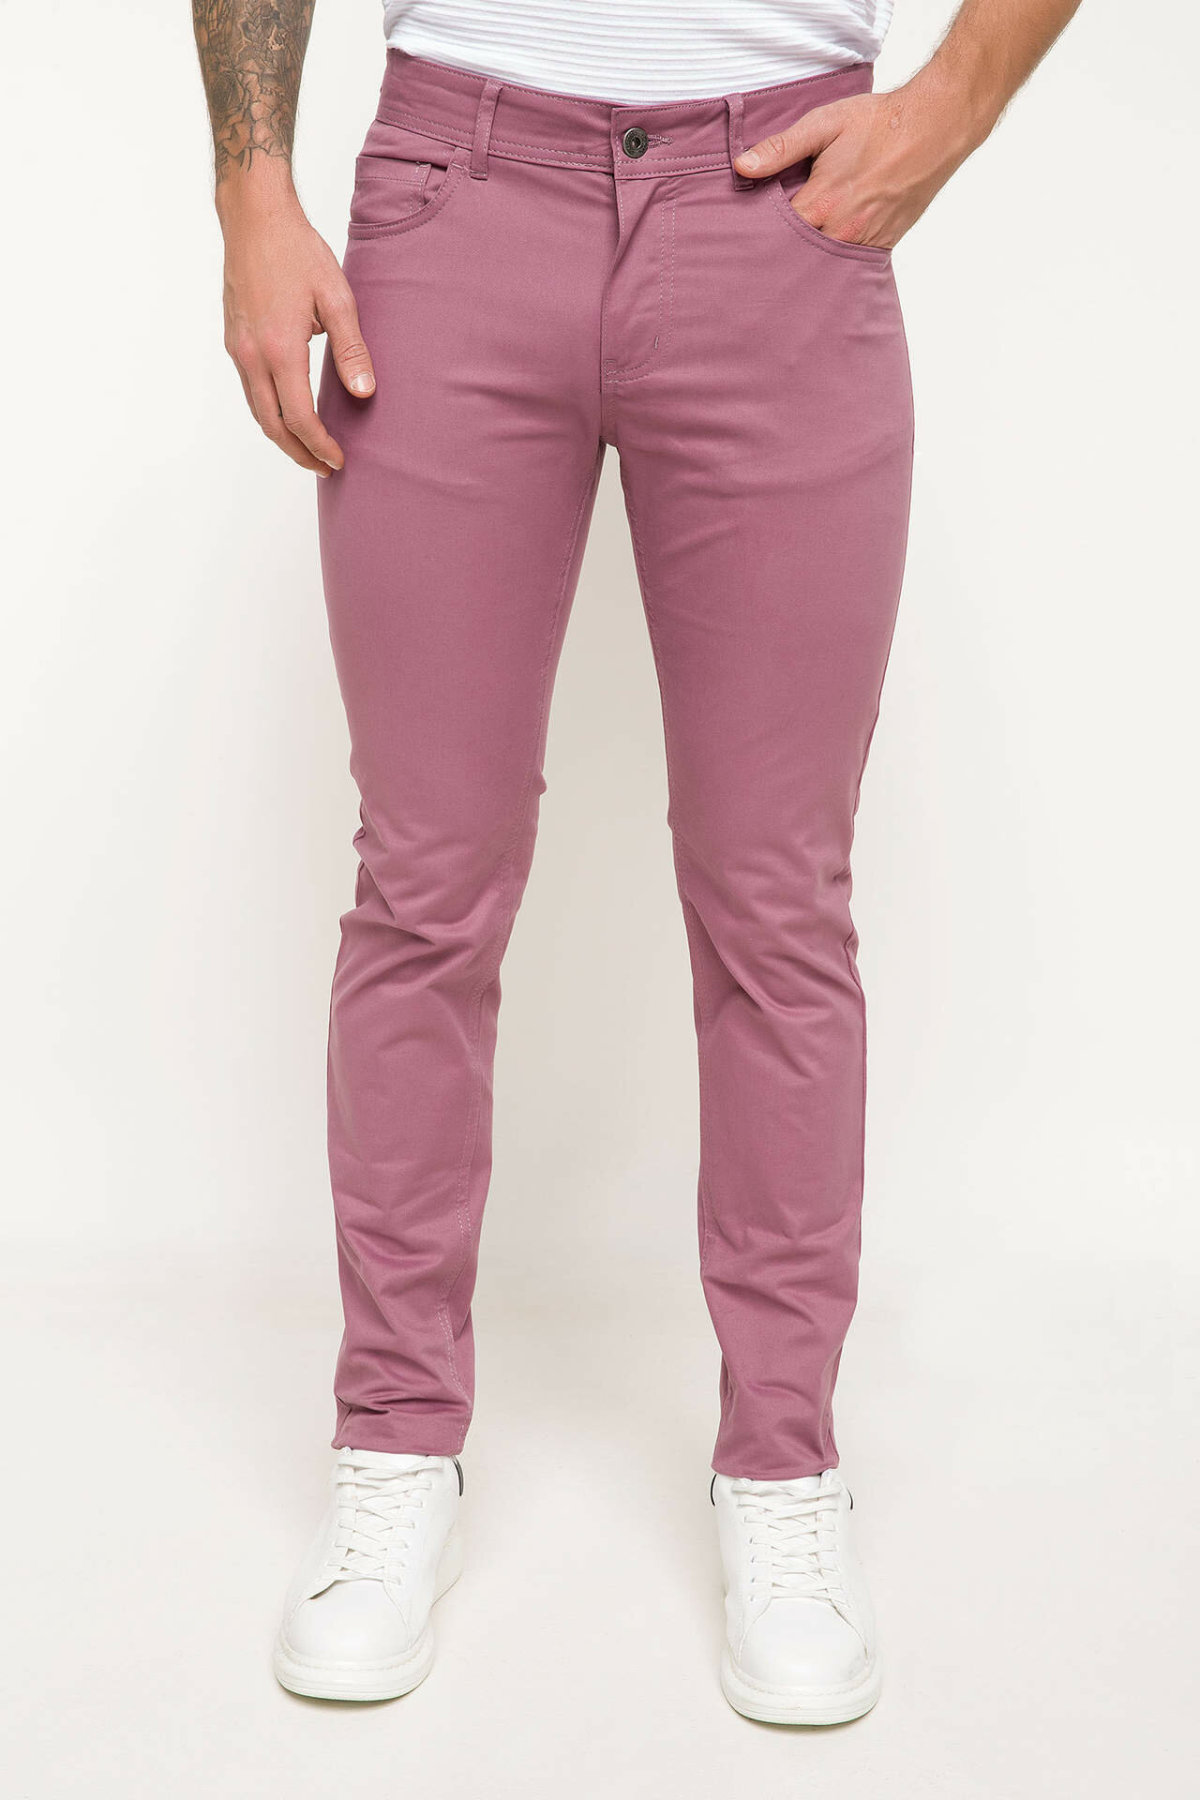 DeFacto Spring Pink Color Long Pants Men Casual Bottoms Men Trousers Male Skinny Fit Long Pants-I3518AZ18SP